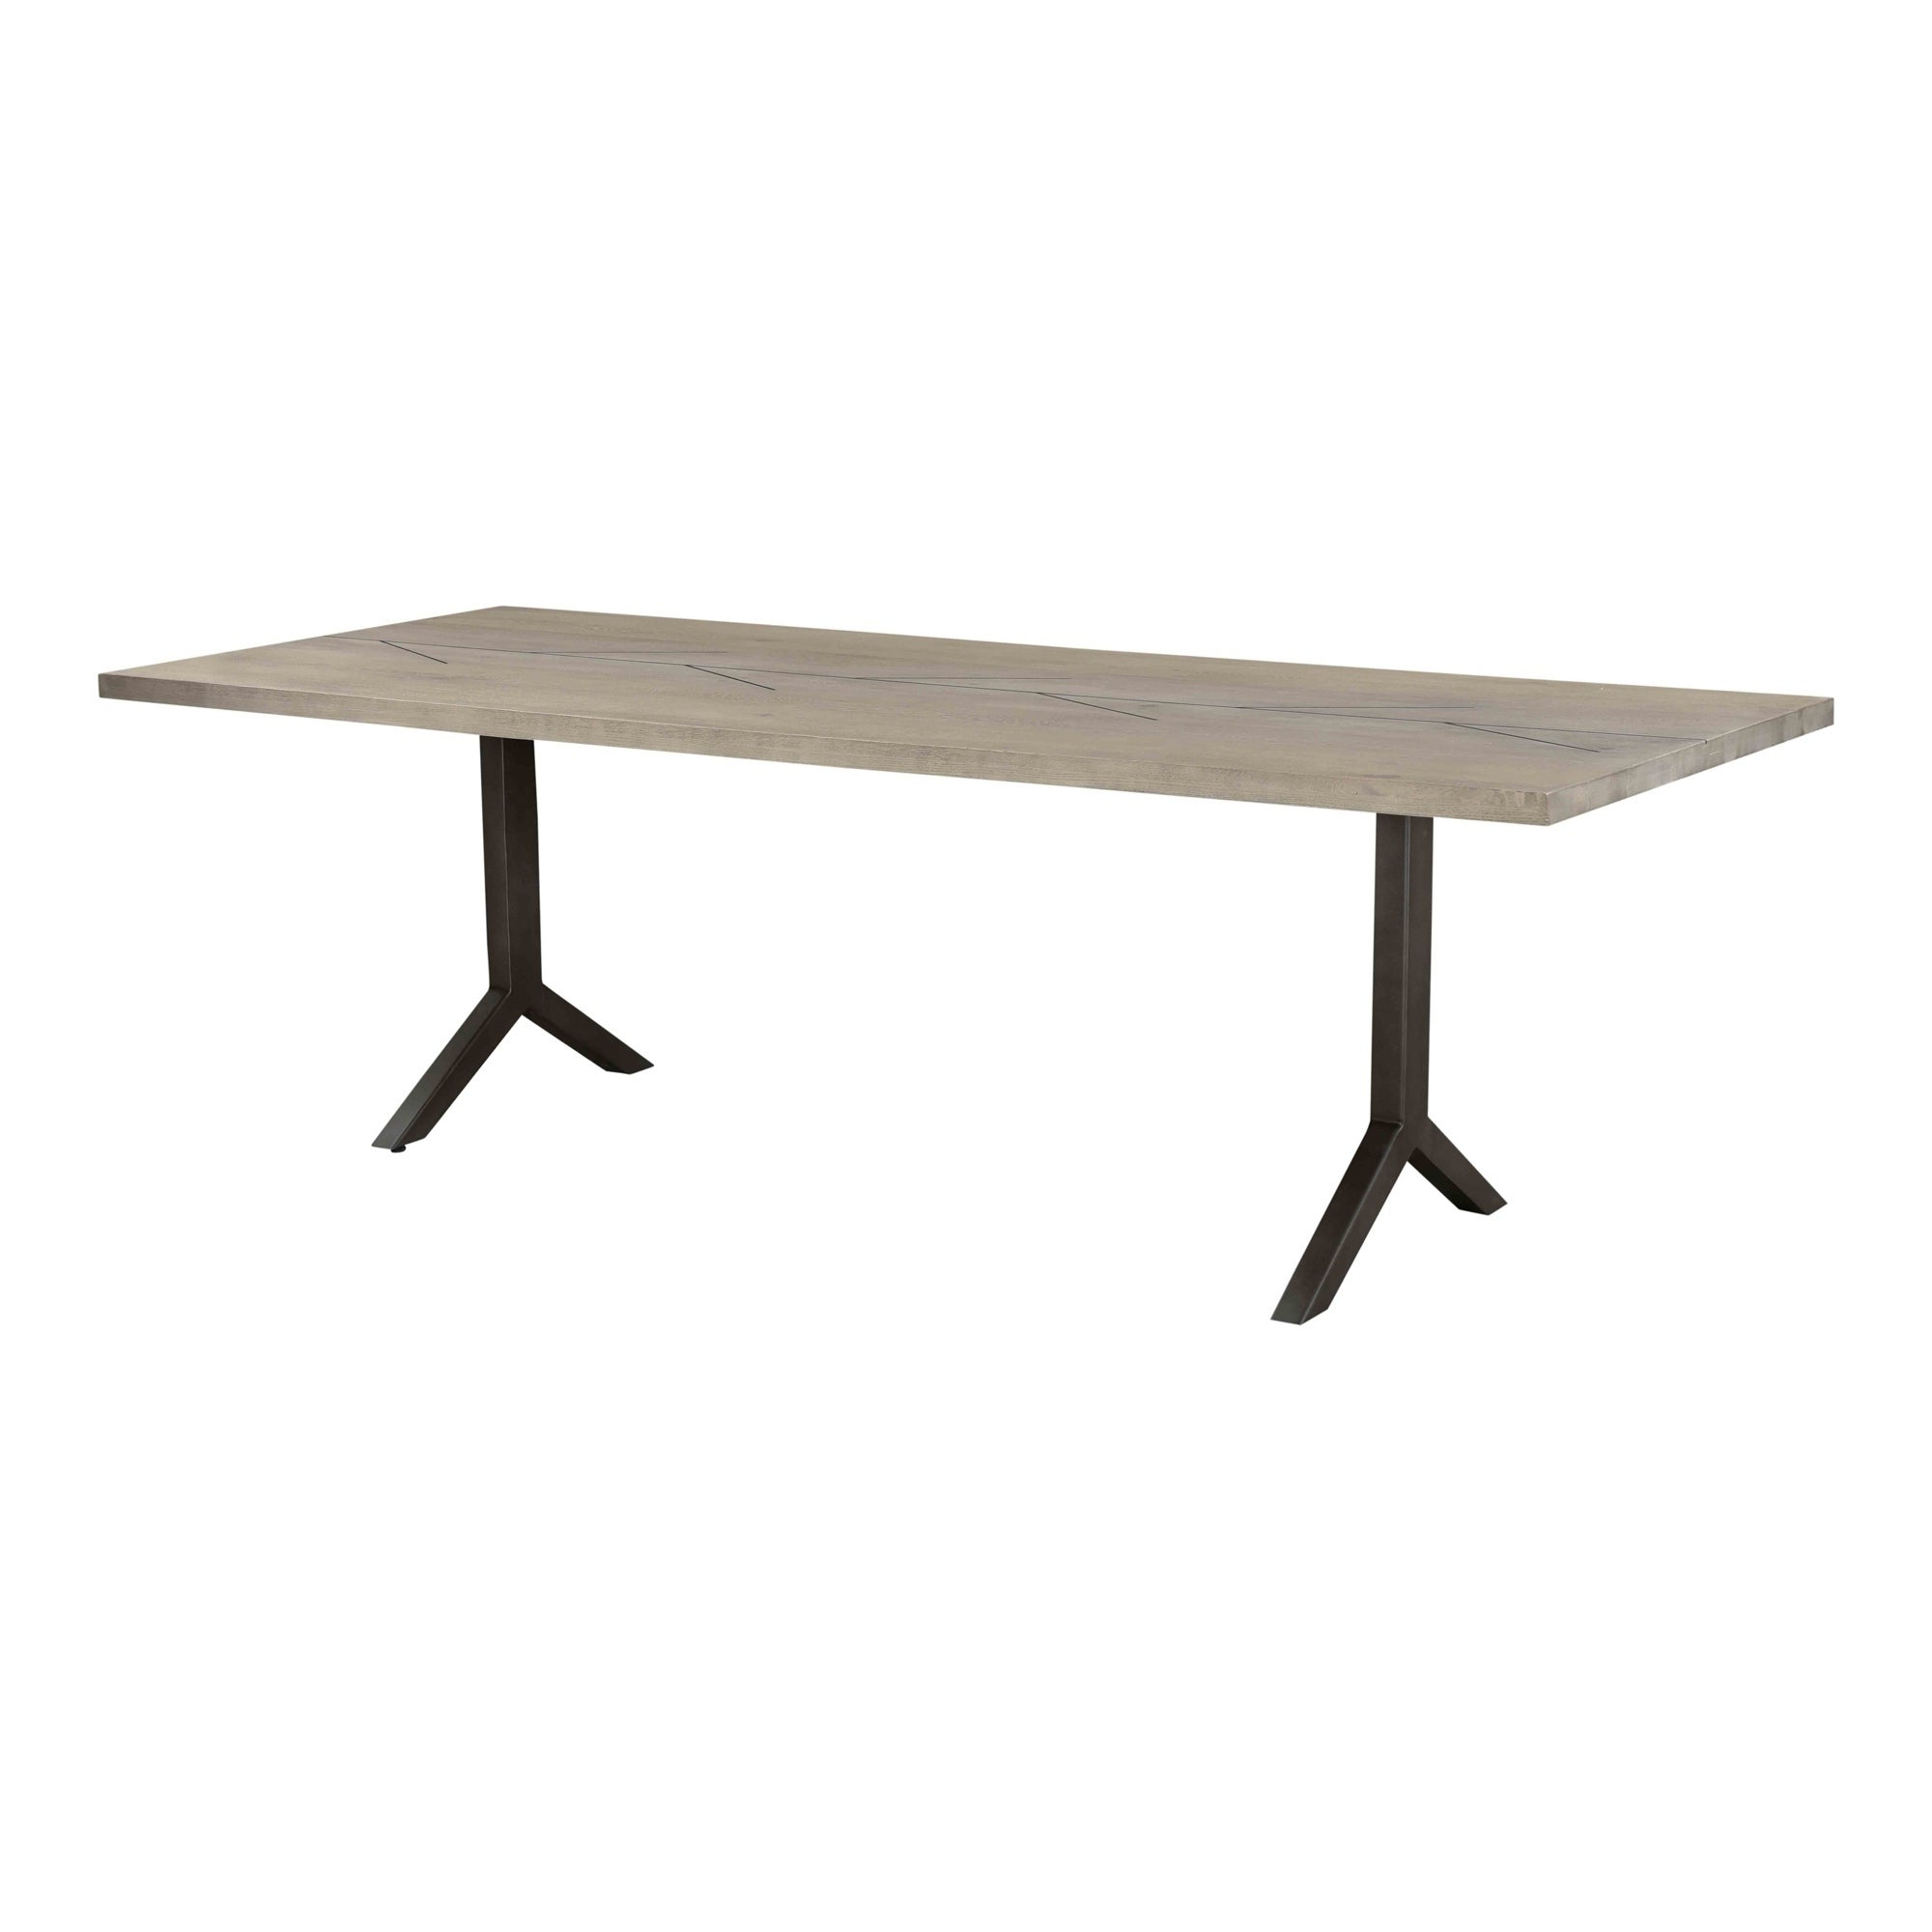 Recent Aurelle Home Bucha Grey Solid Oak With Metal Inlay Modern Dining Table throughout Menlo Reclaimed Wood Extending Dining Tables